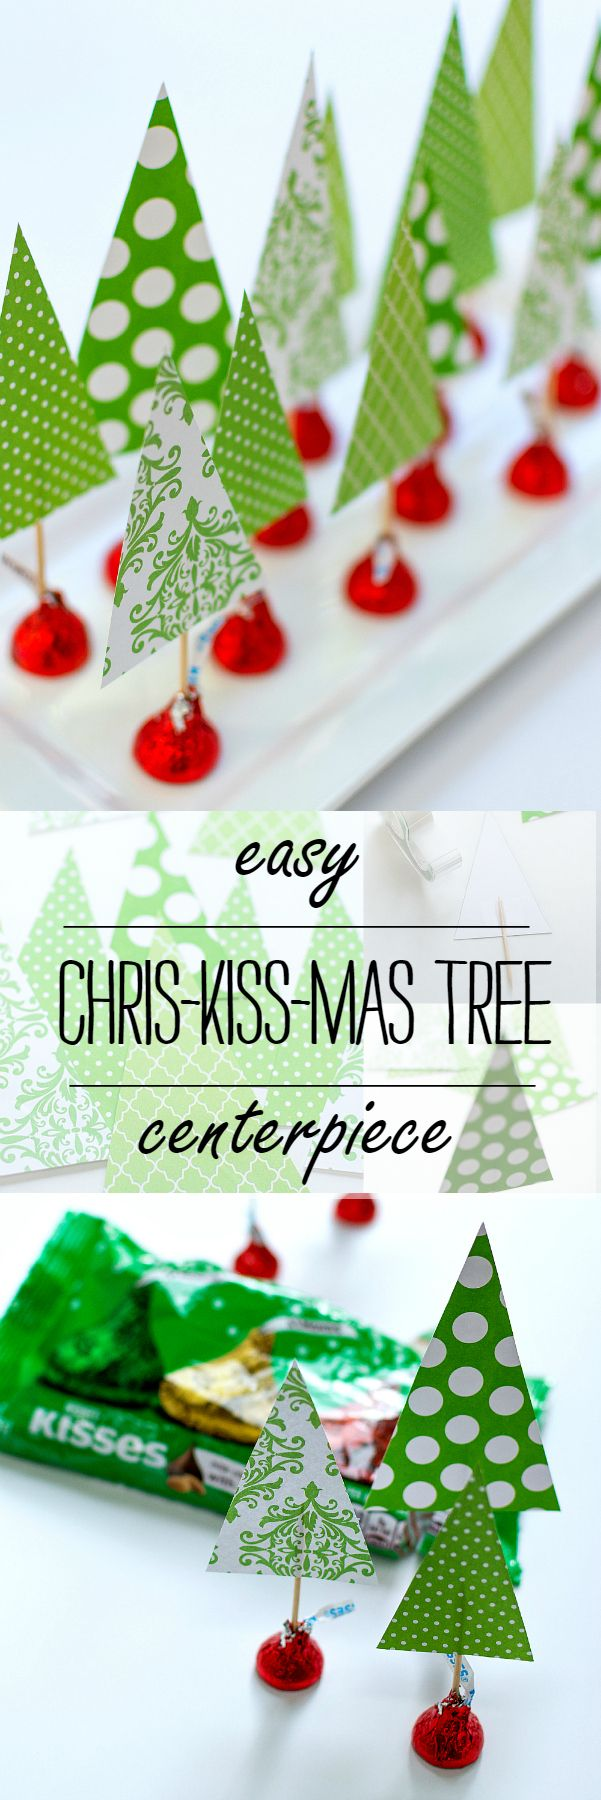 36 impressive christmas table centerpieces decoholic - Christmas Crafts With Kids